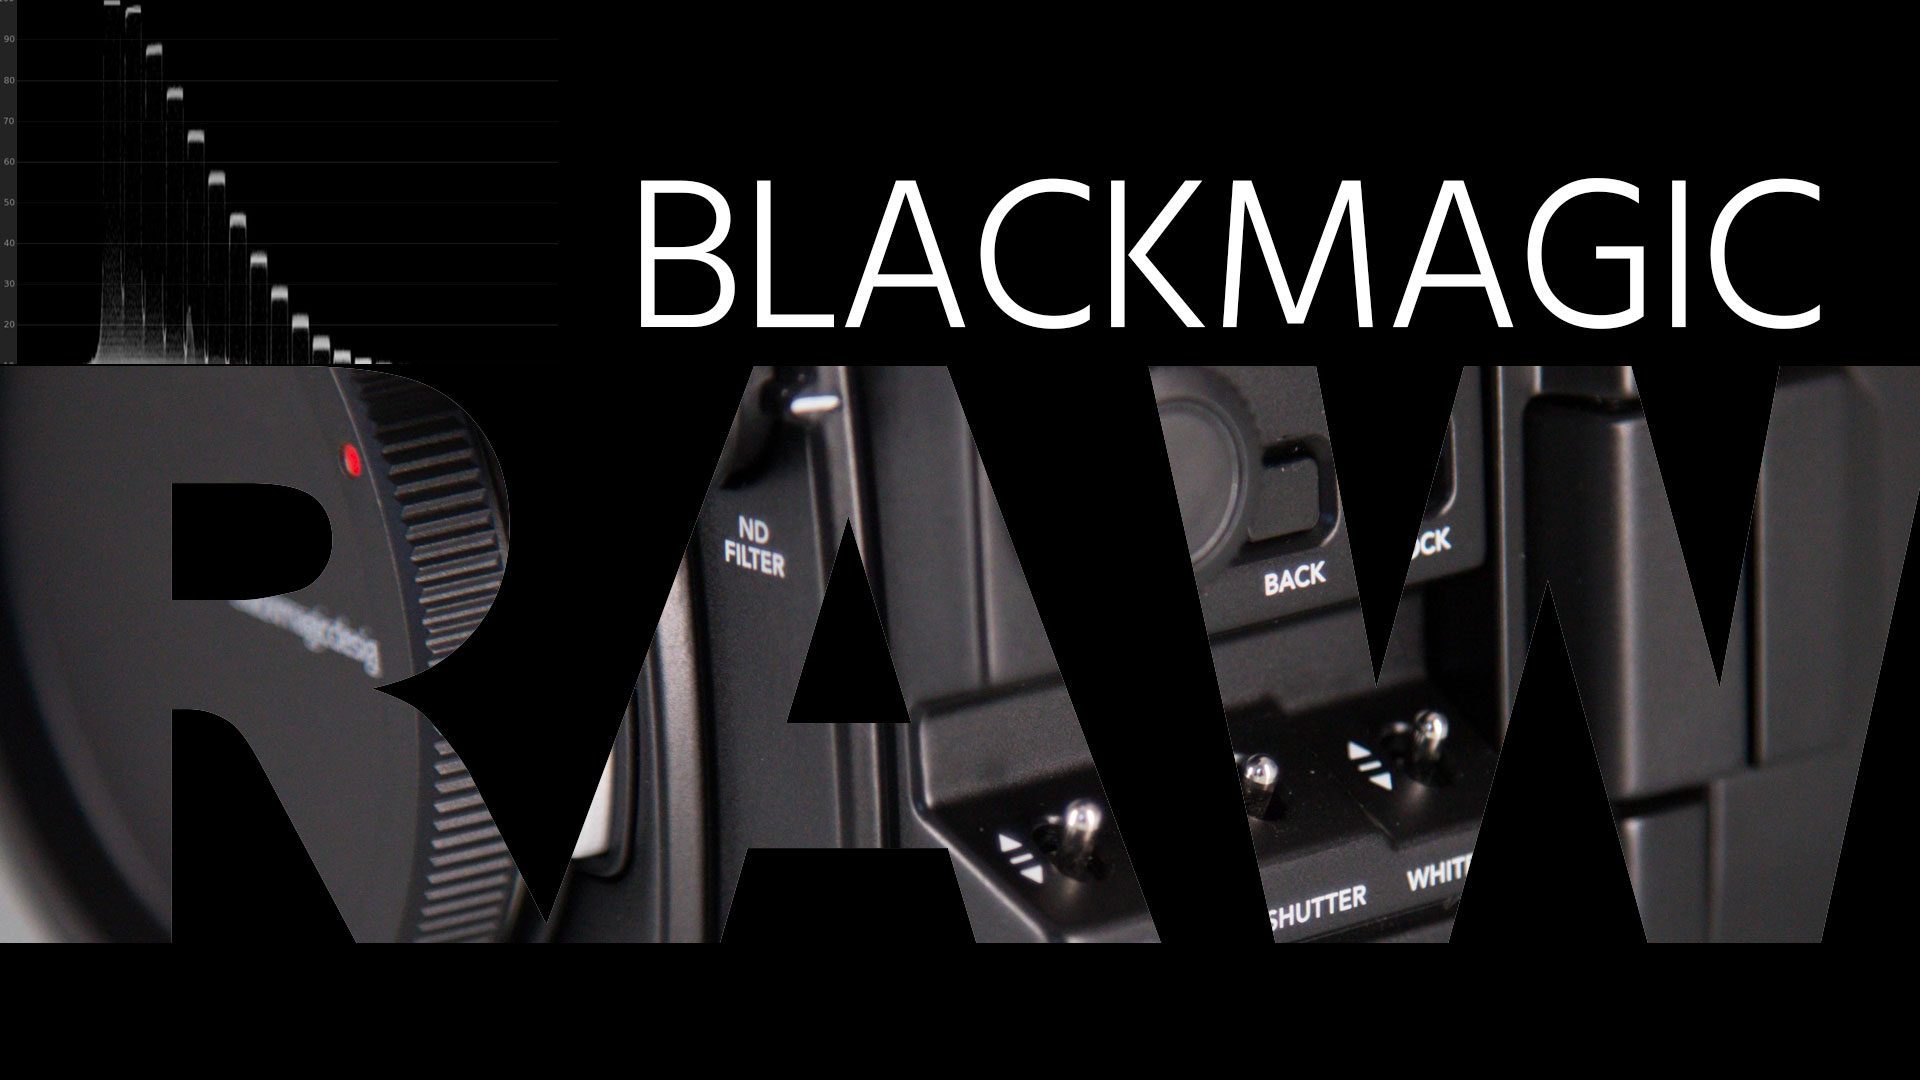 Blackmagic RAW - Testeamos el Rango dinámico de la URSA Mini Pro 4.6